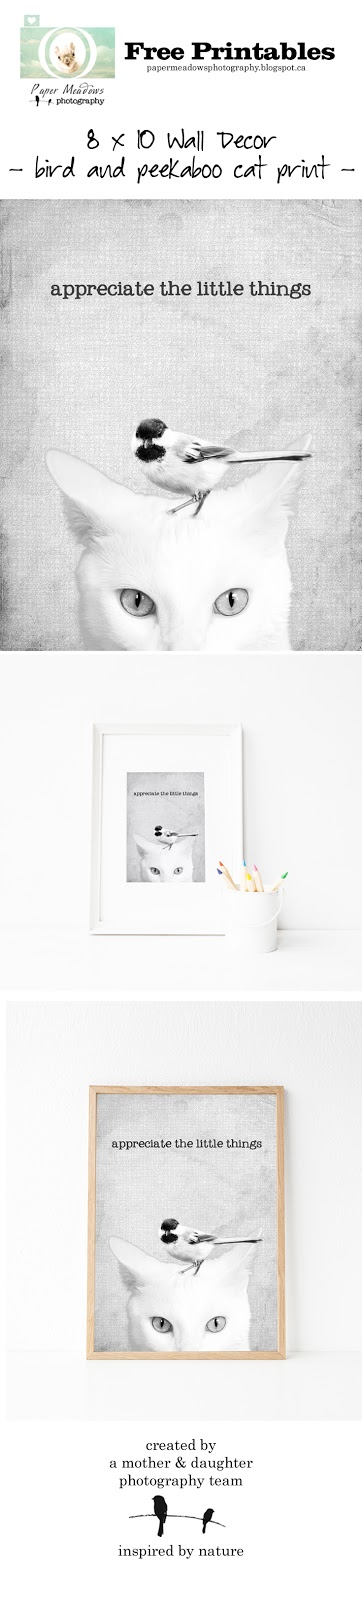 Paper Meadows Photography Blog- Free Printable- Peekaboo Animal, Cat and Bird Print, Wall Decor, Wall Art